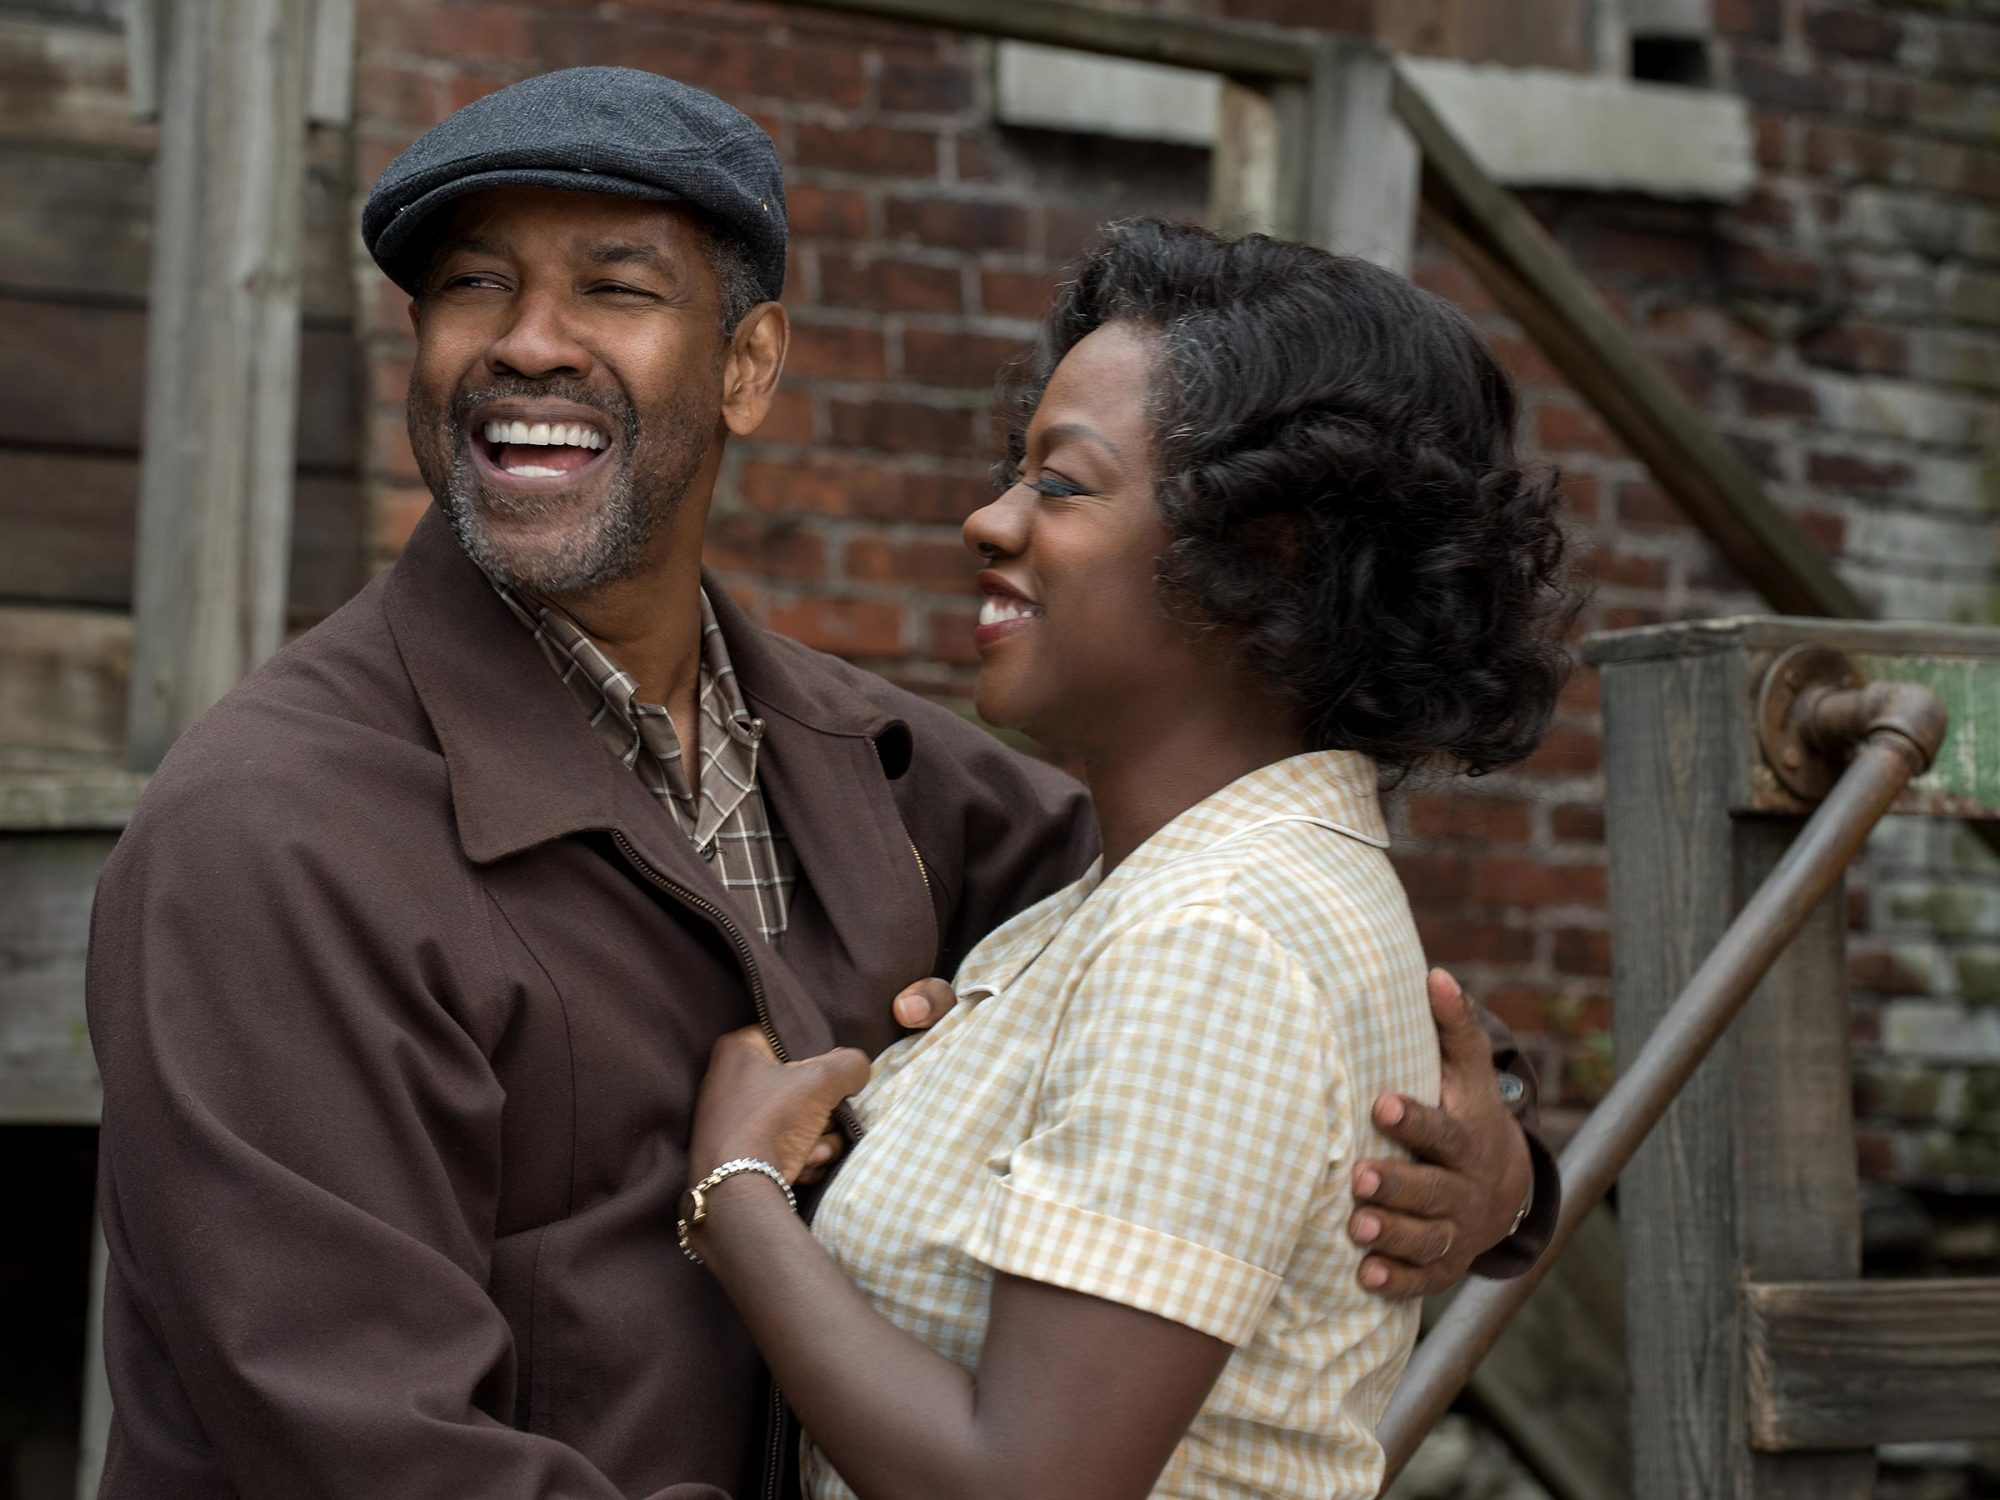 Fences based on Fences by August Wilson